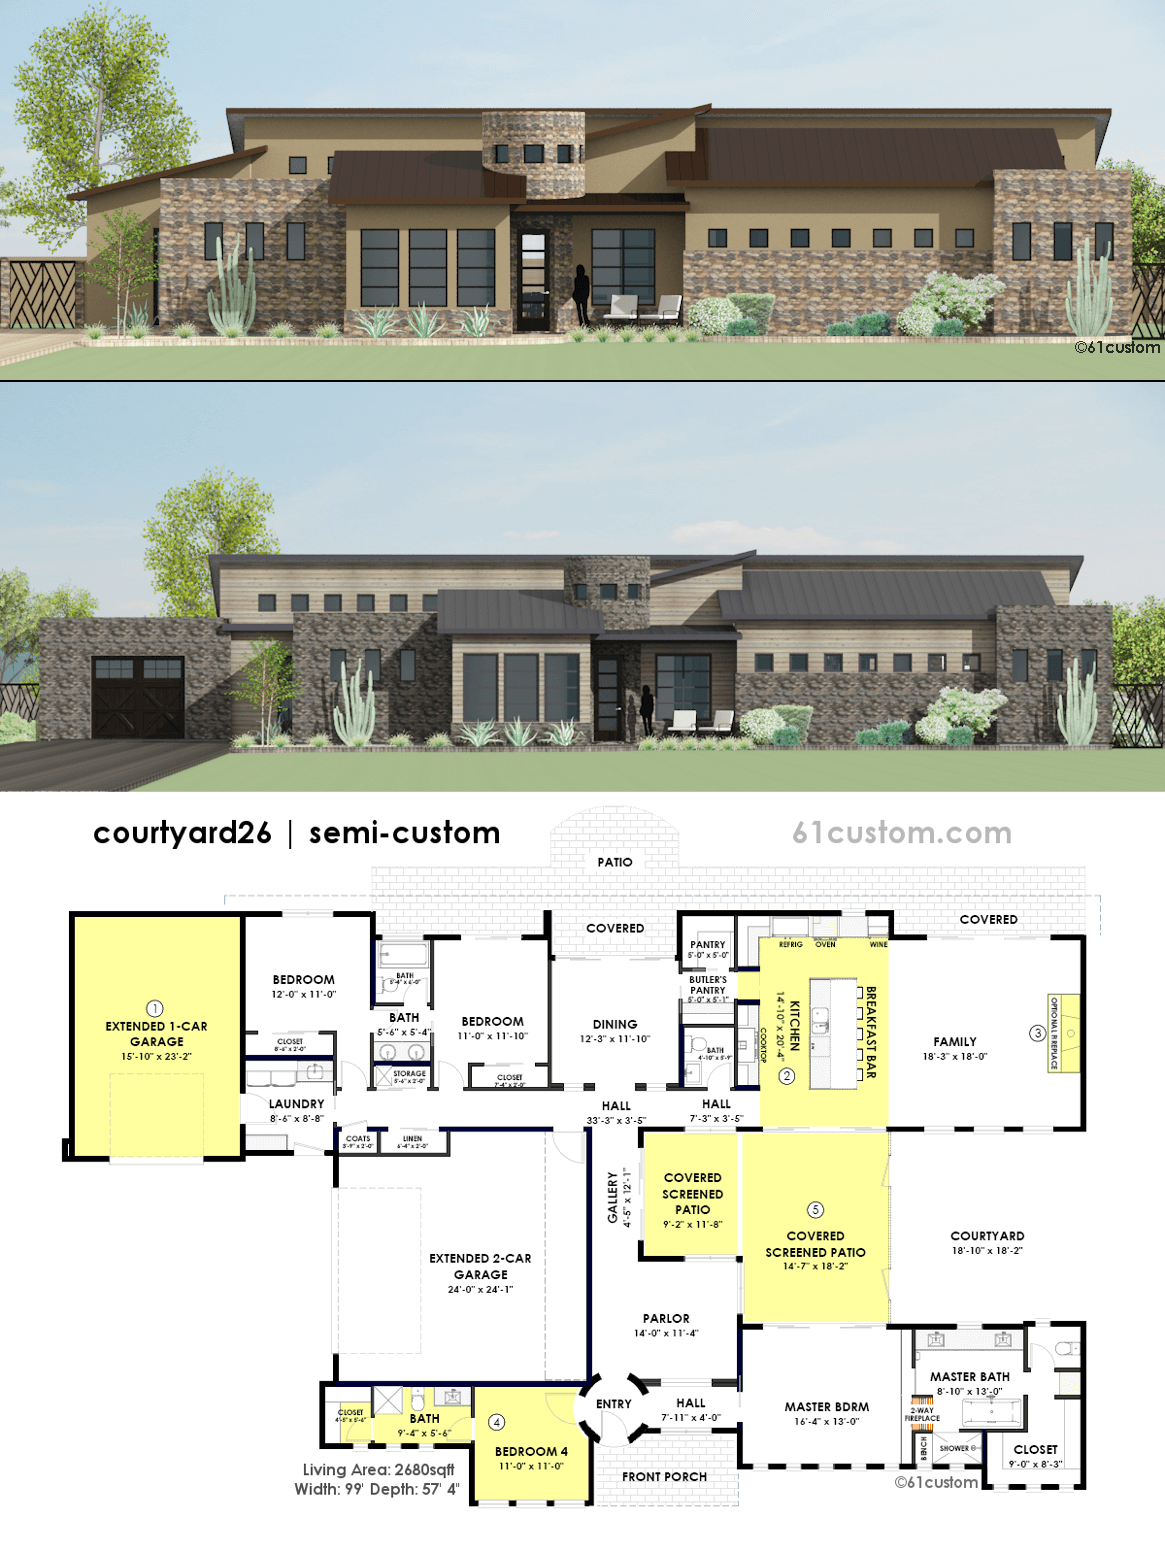 Contemporary side courtyard house plan 61custom for Modern courtyard house designs